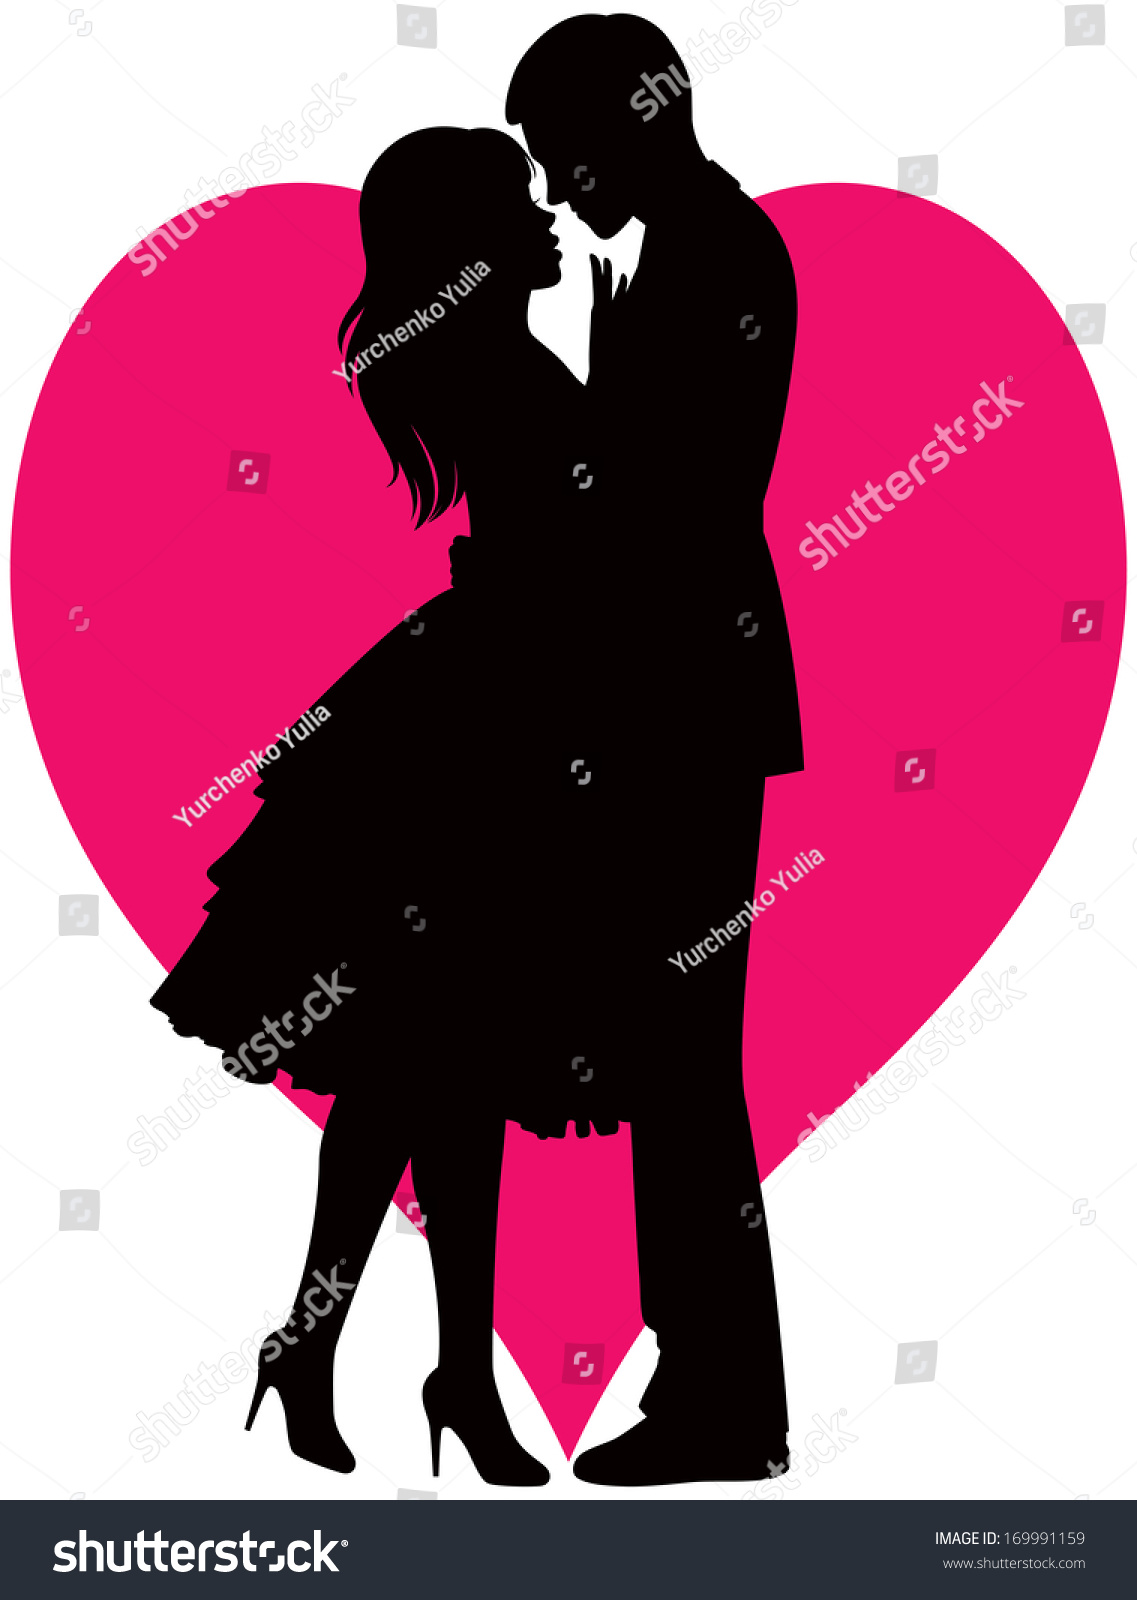 Illustration black silhouette lovers embracing on stock for Pictures of black lovers